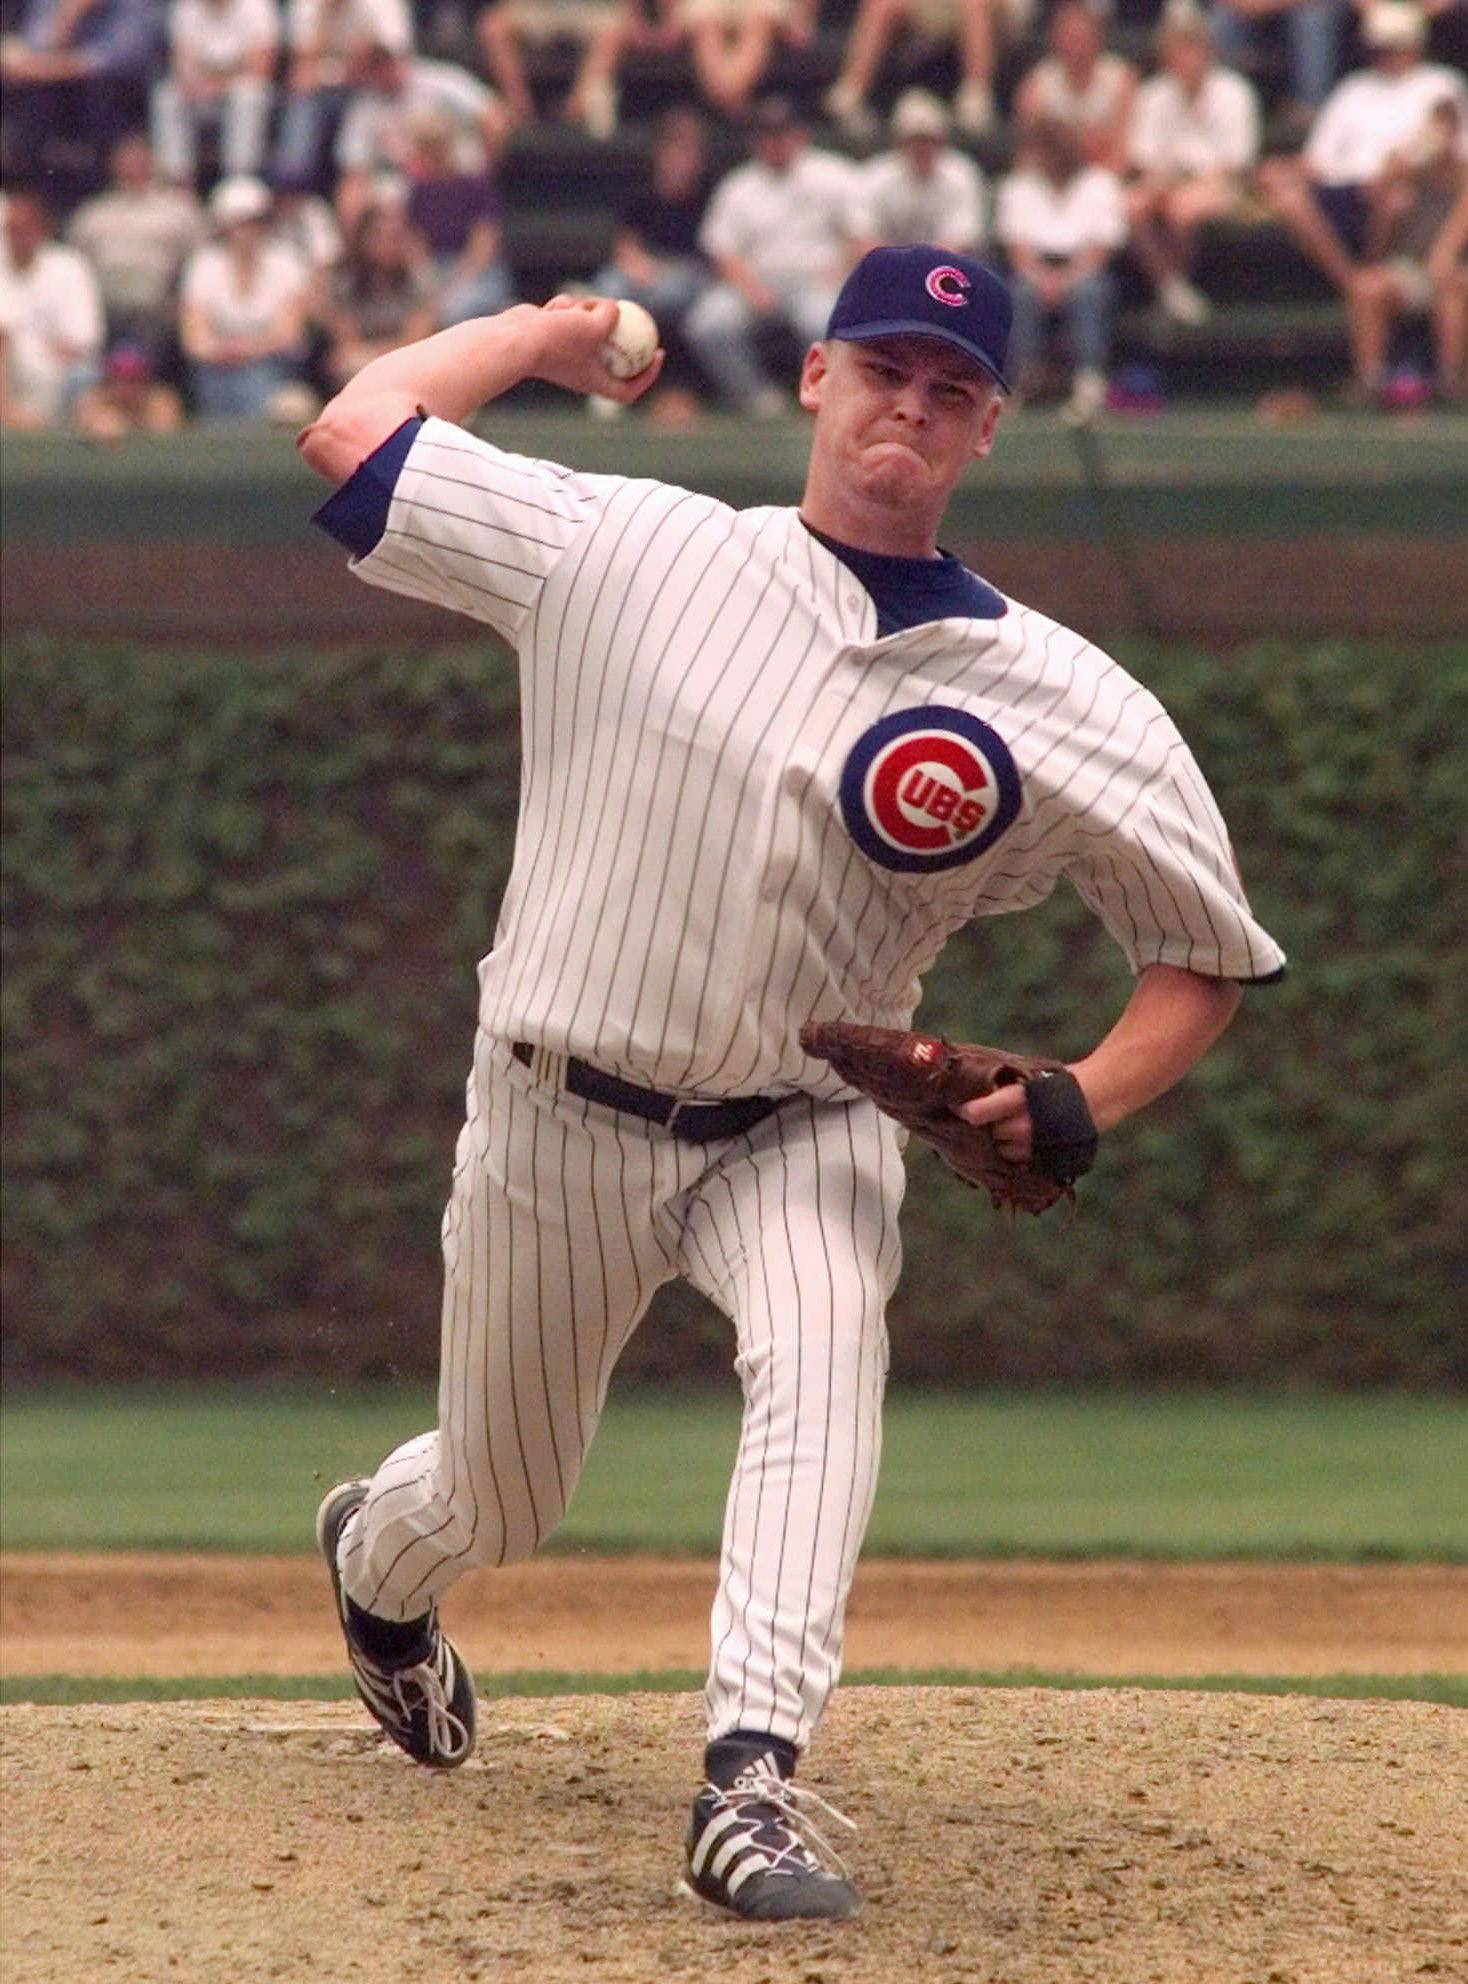 One of the highlights in the Cubs-Astros rivalry was when rookie Kerry Wood tied the major league record with 20 strikeouts in a nine-inning game on May 6, 1998. He pitched a one-hitter to beat the Astros 2-0.